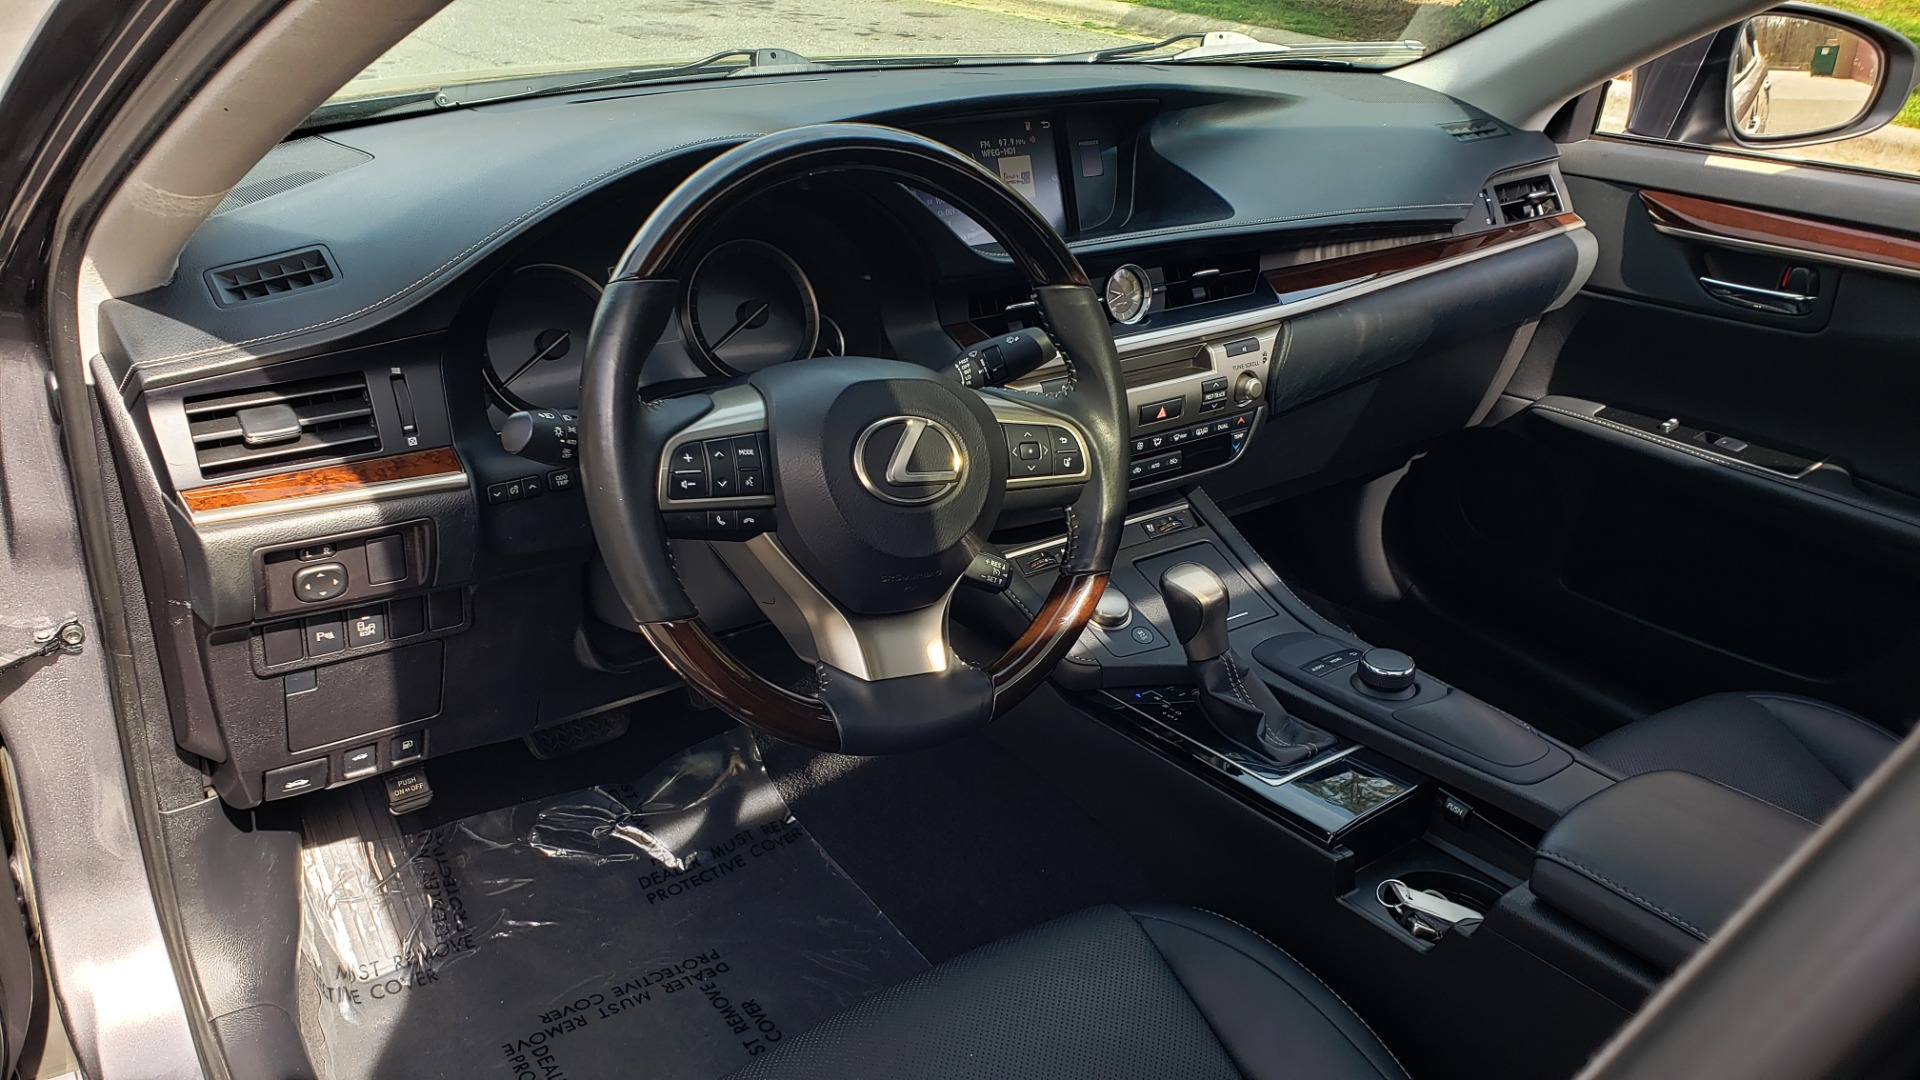 Used 2016 Lexus ES 350 4-DR PREMIUM / SUNROOF / BSM / REARVIEW / VENT STS for sale Sold at Formula Imports in Charlotte NC 28227 34